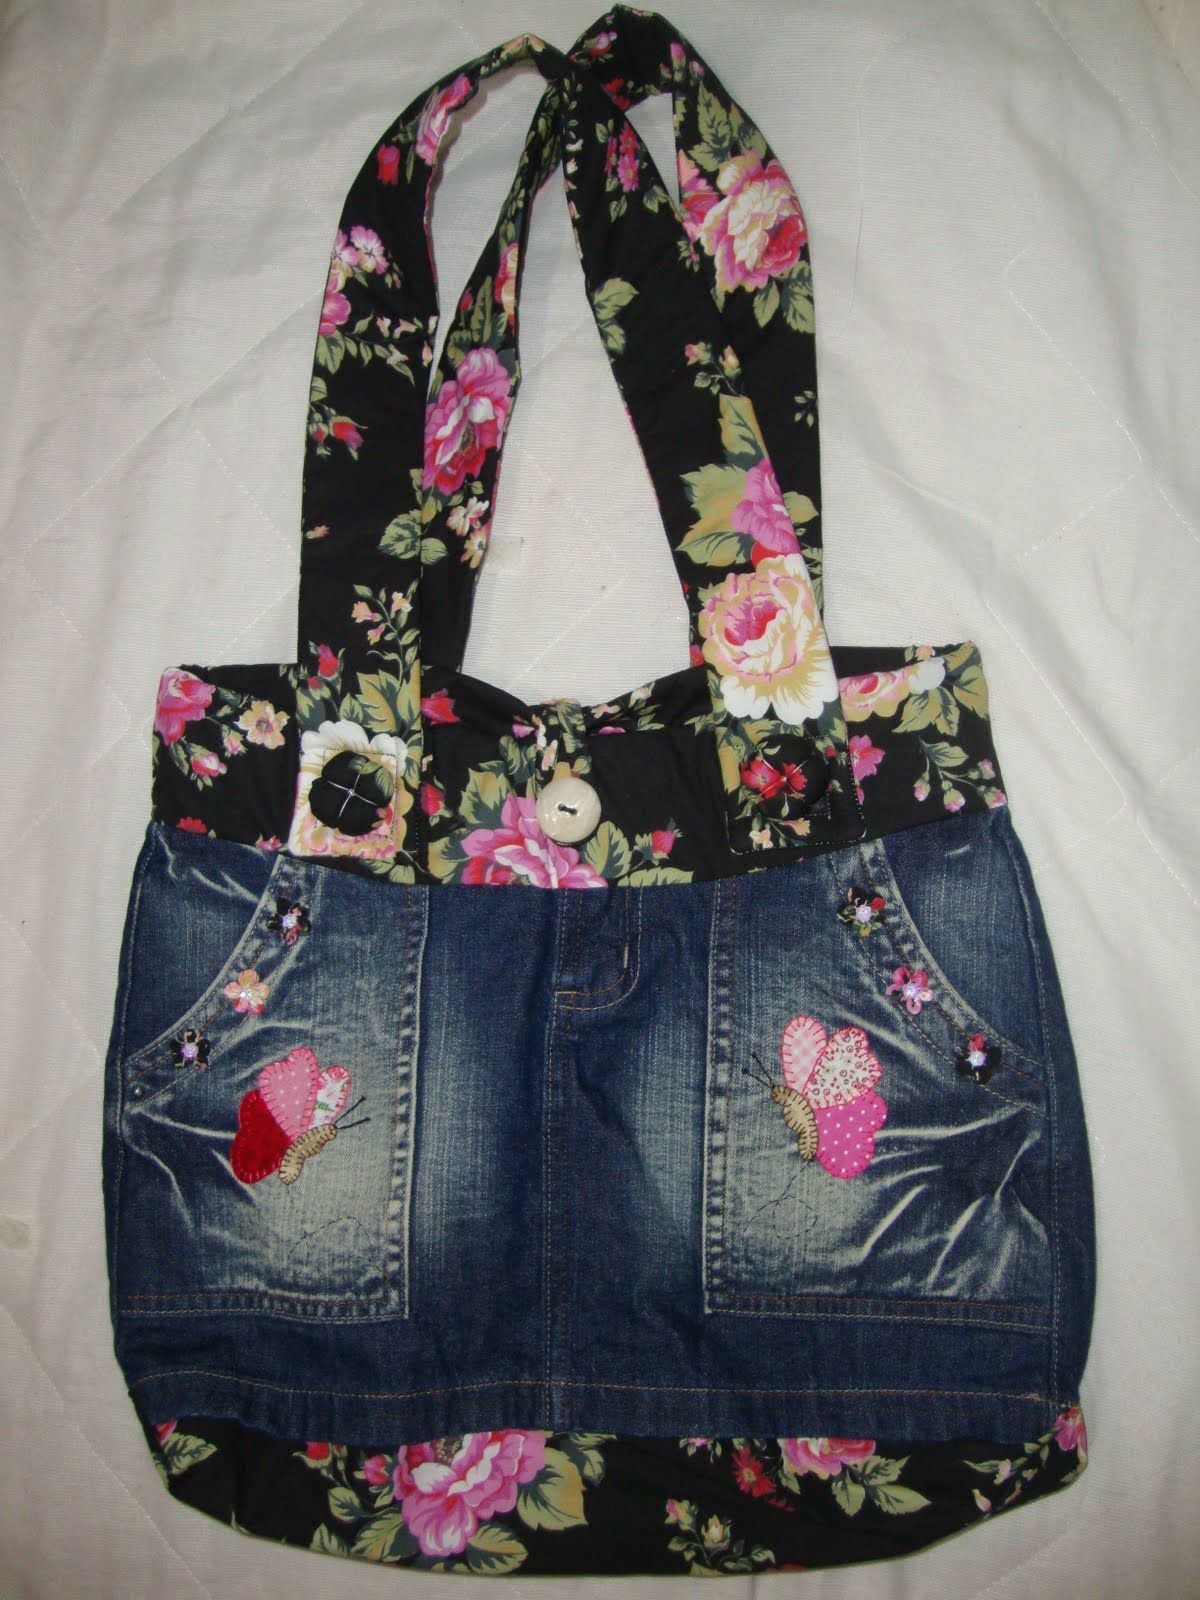 9e95d7d6a4 Alearte: Bolsa, recycle, upcycle, re-use, DIY, bag, purse, tote, flowers,  fabrique, pockets, pretty, feminine, beautiful, beauty, details, crafting  idea